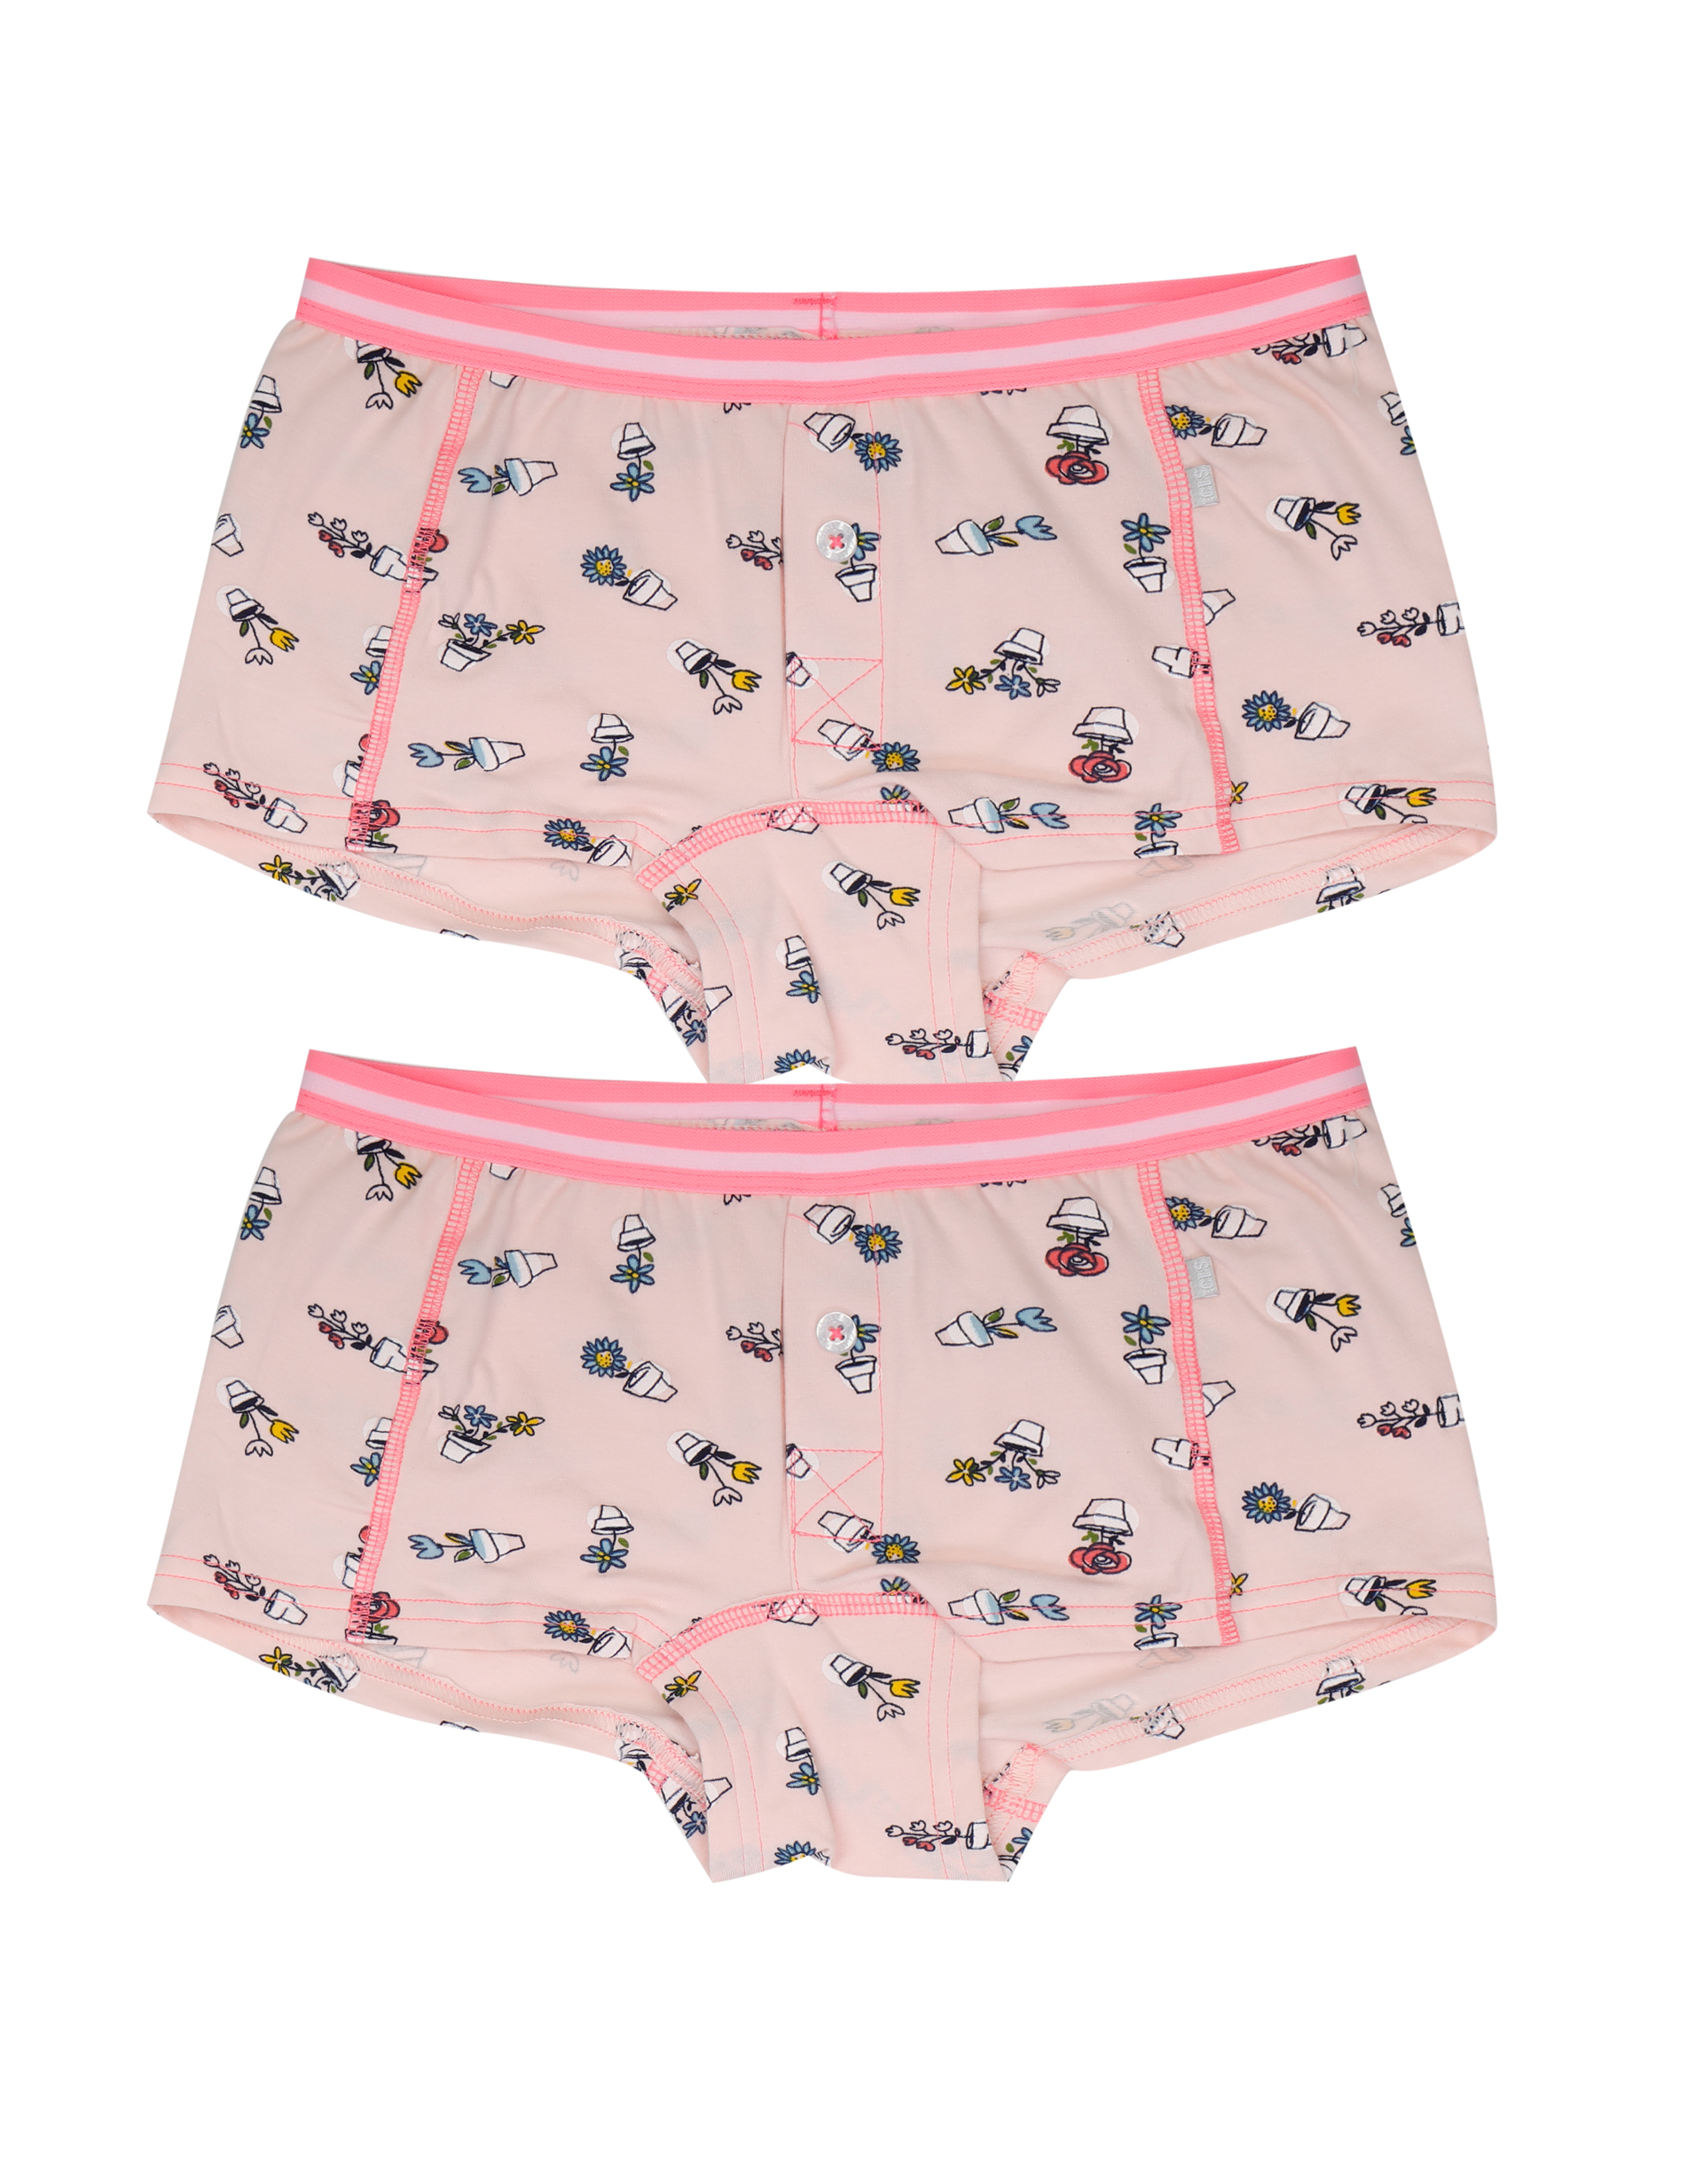 Ladies 2 pack Boxer